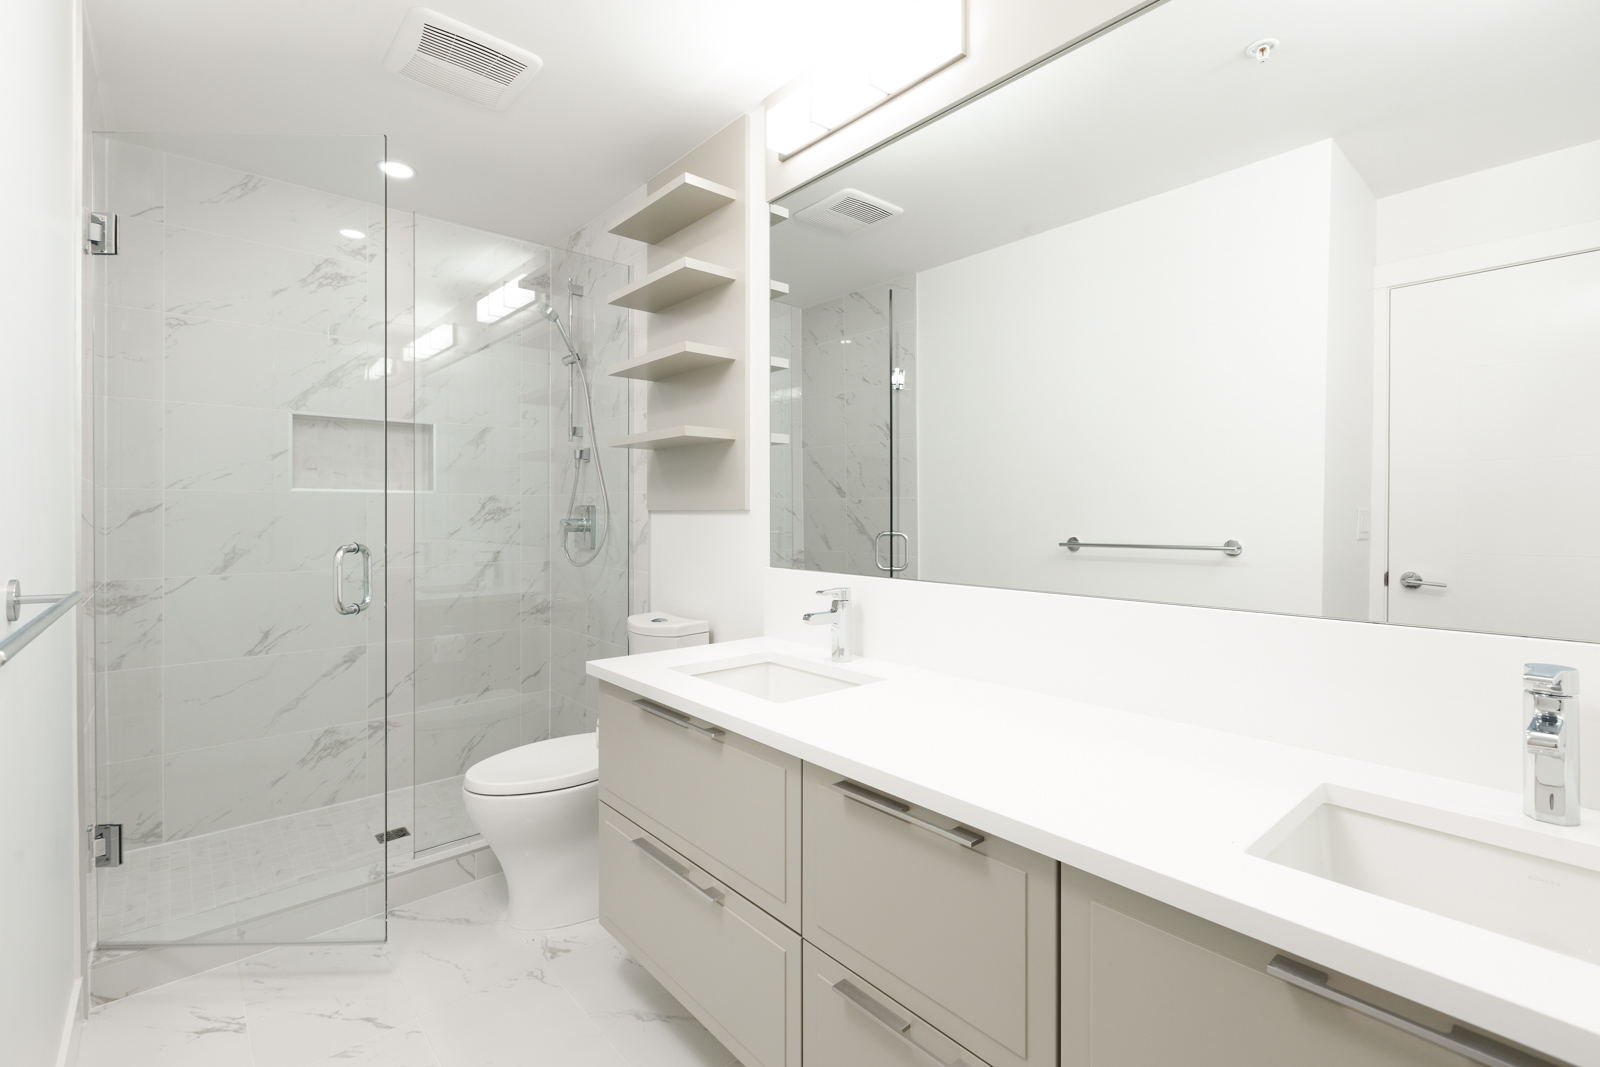 Newly built bathroom inside Vancouver rental townhome.